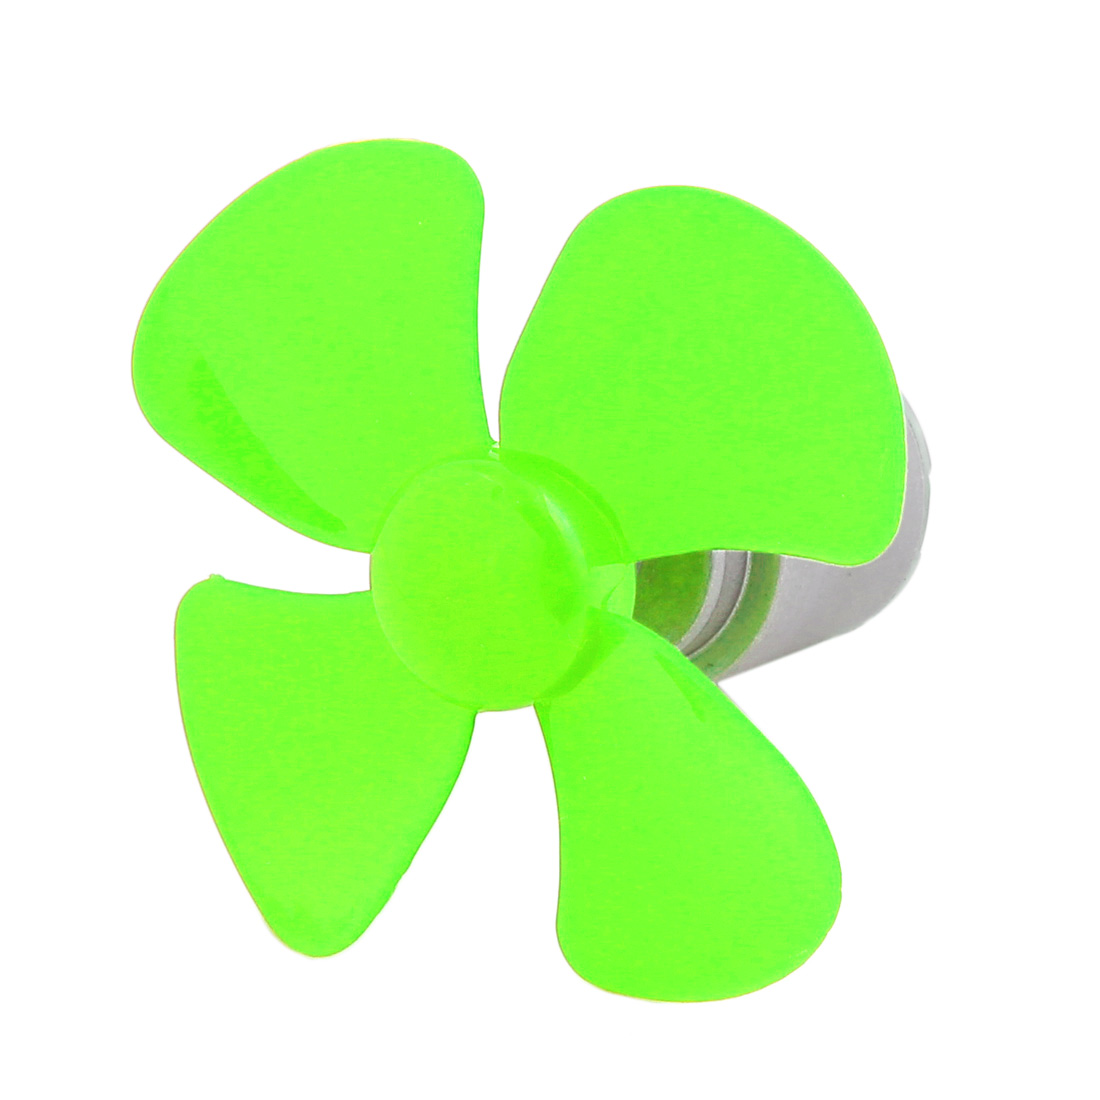 DC 3V 0.13A 21500RPM Strong Force Motor 4 Vanes 56mm Green Propeller for RC Aircraft